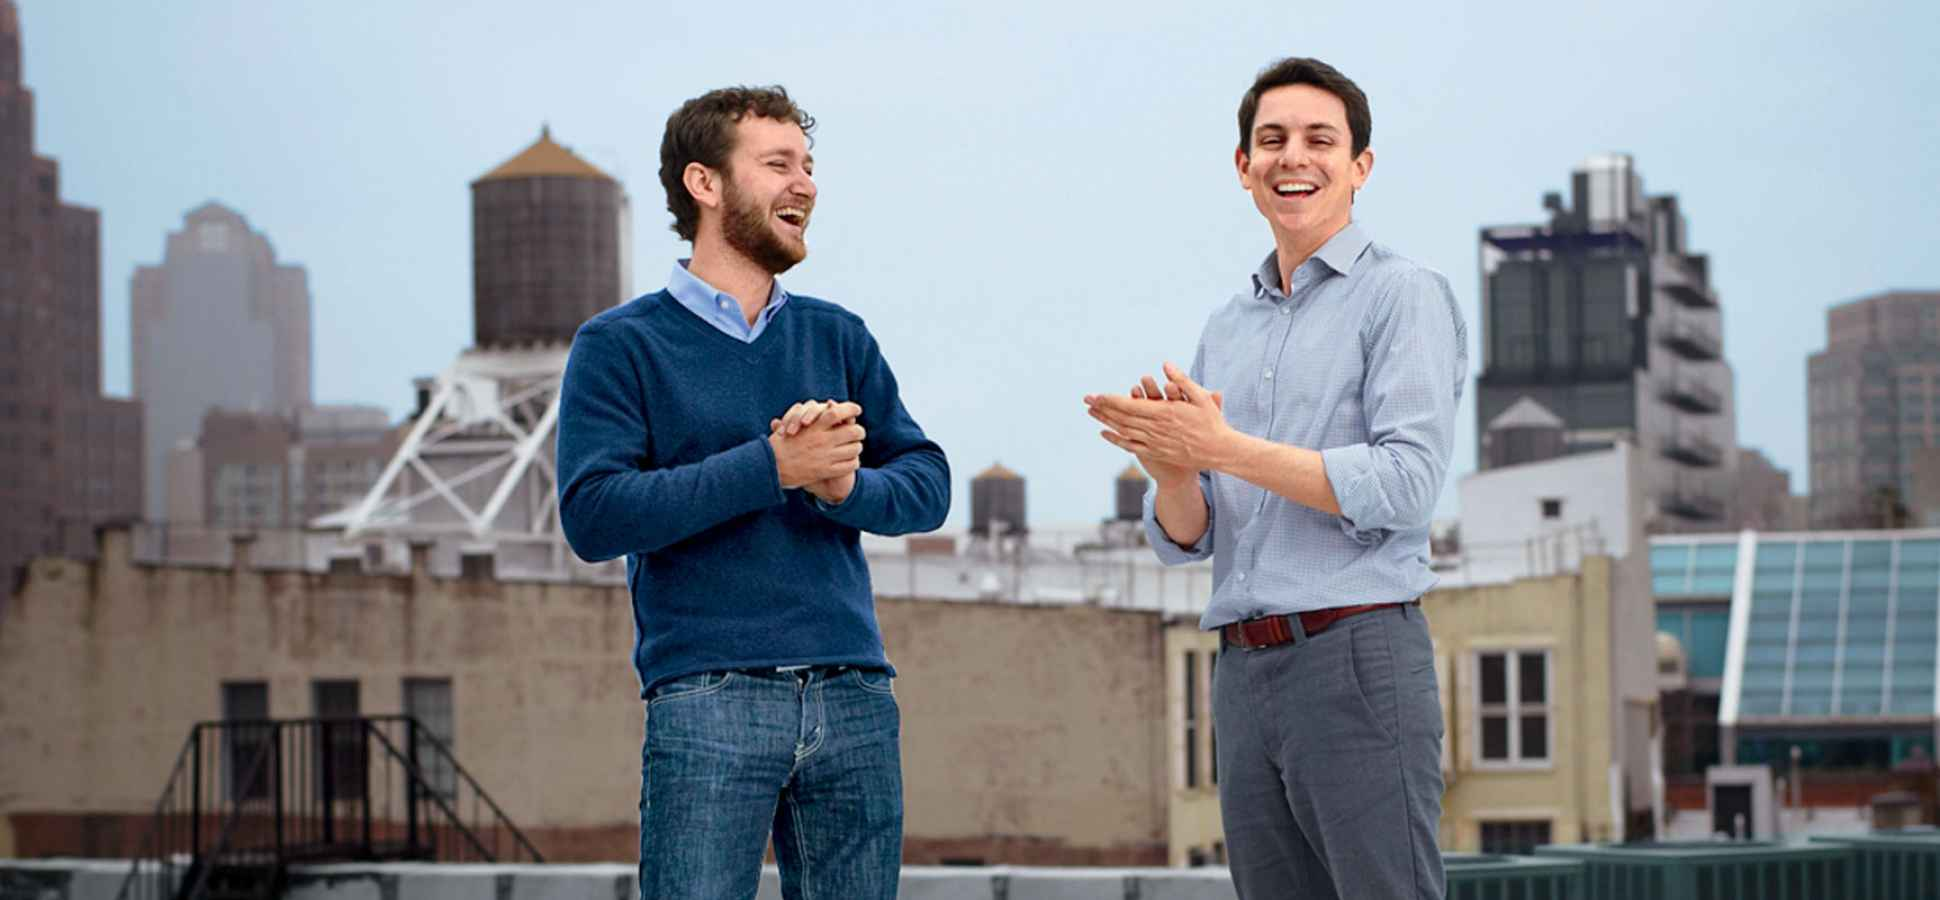 Betterment founders - Jon Stein and Eli Broverman (Image Credit -  Inc.com )